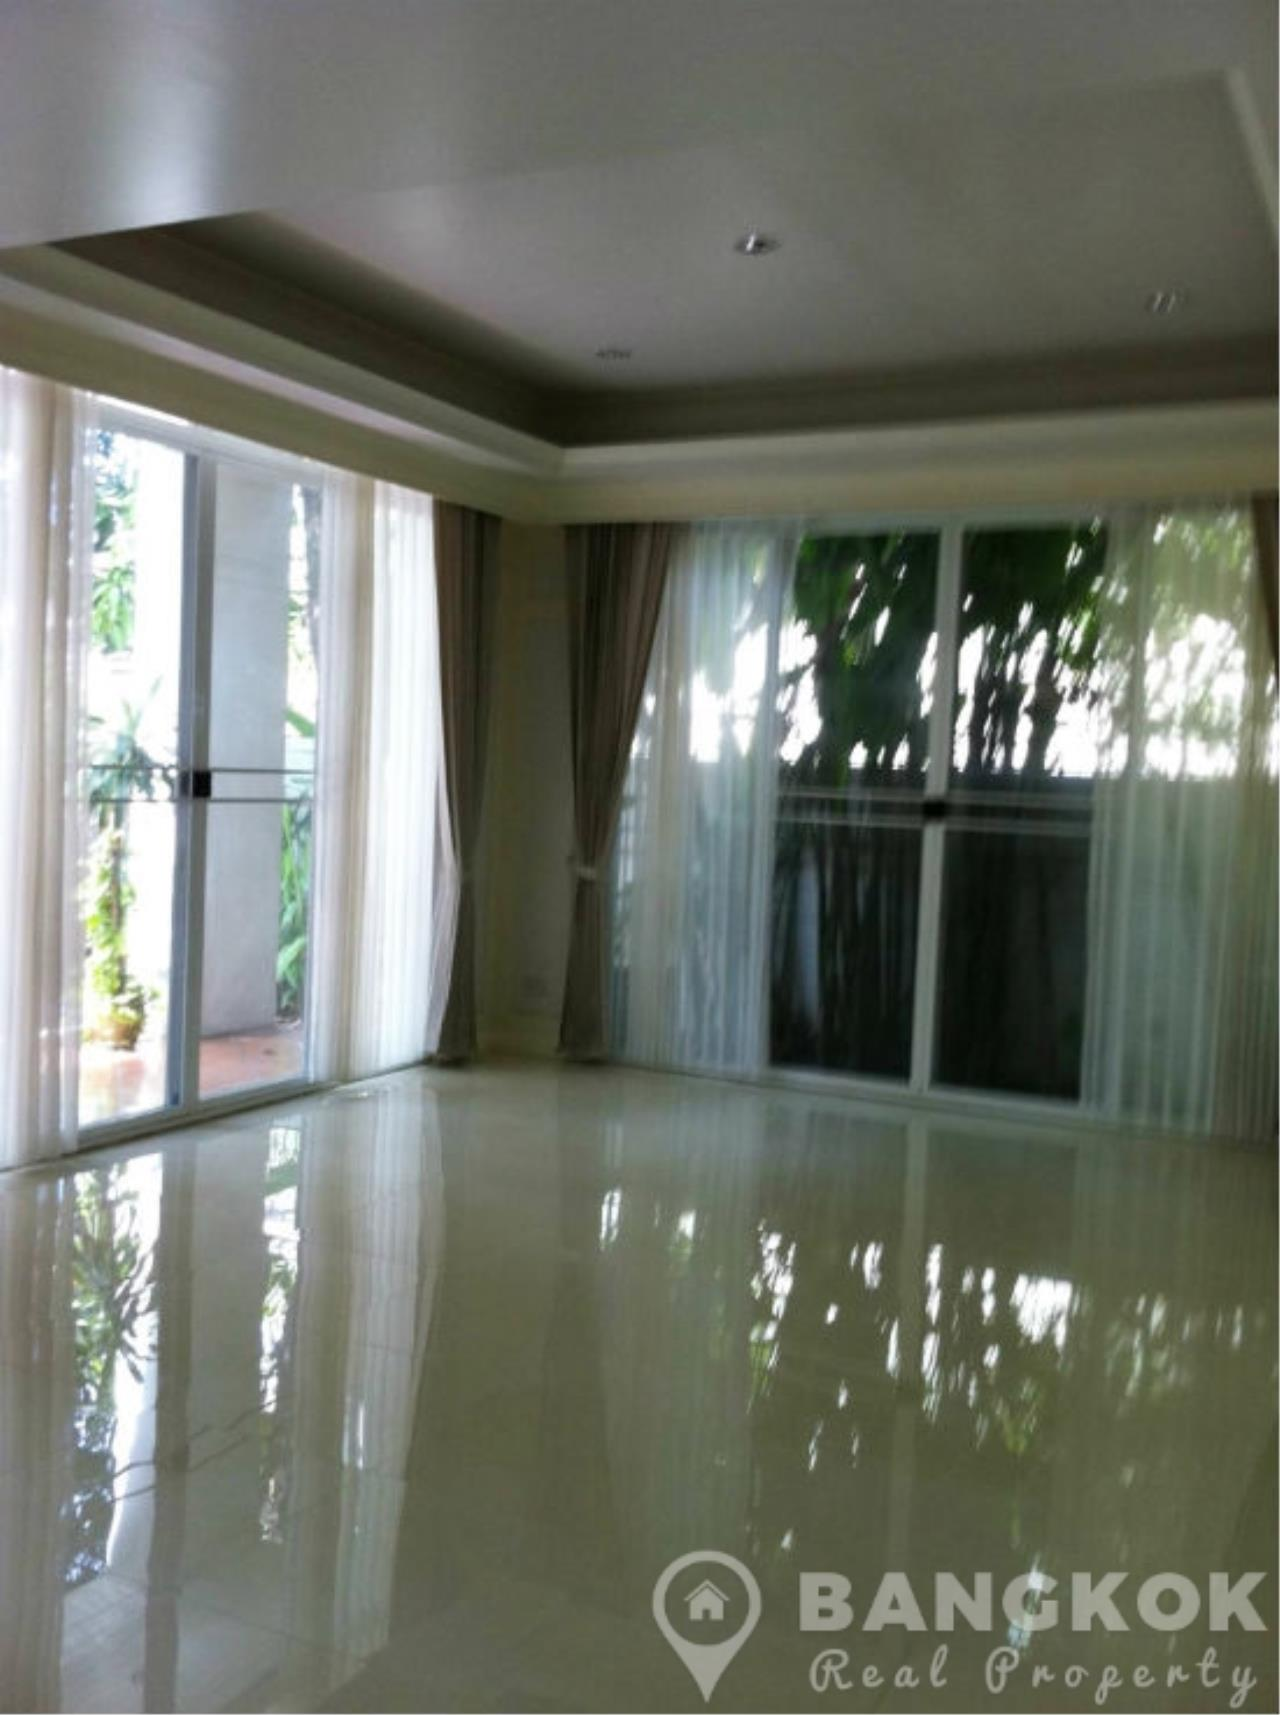 Bangkok Real Property Agency's Spacious Detached 3+1 Bed Family Home near Phrom Phong BTS  2